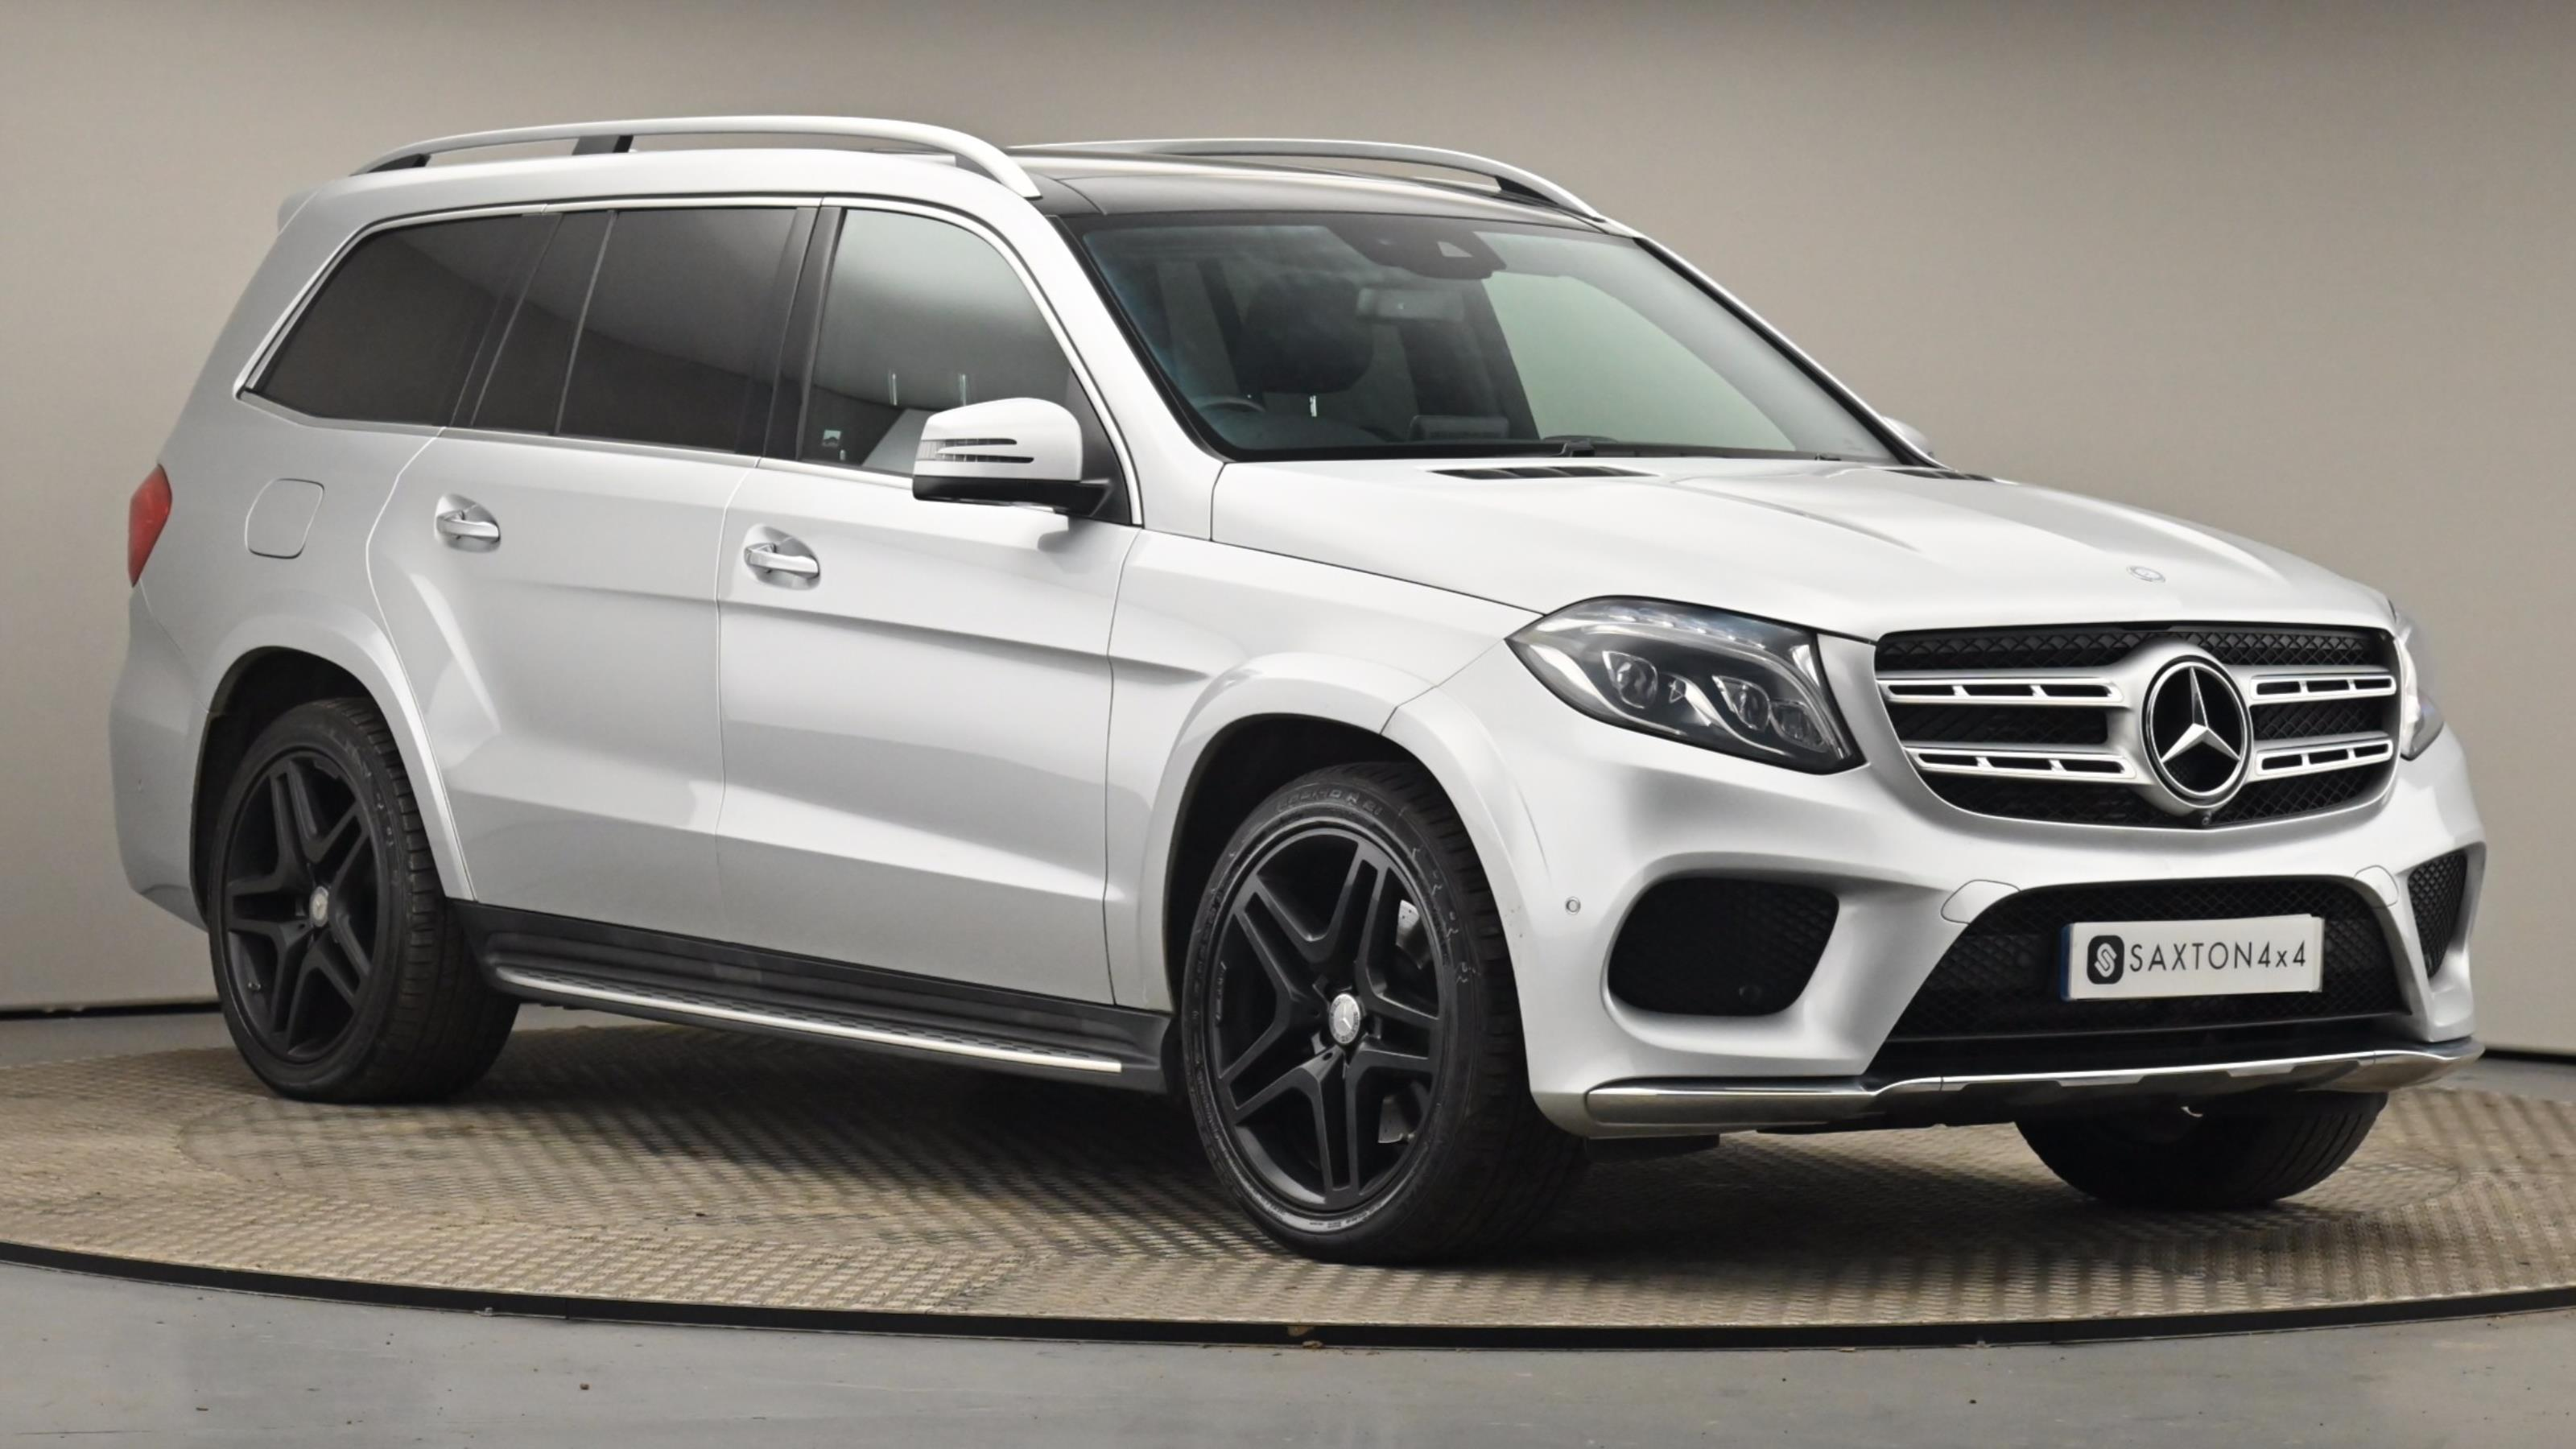 Used 2016 Mercedes-Benz GLS GLS 350d 4Matic AMG Line 5dr 9G-Tronic SILVER at Saxton4x4